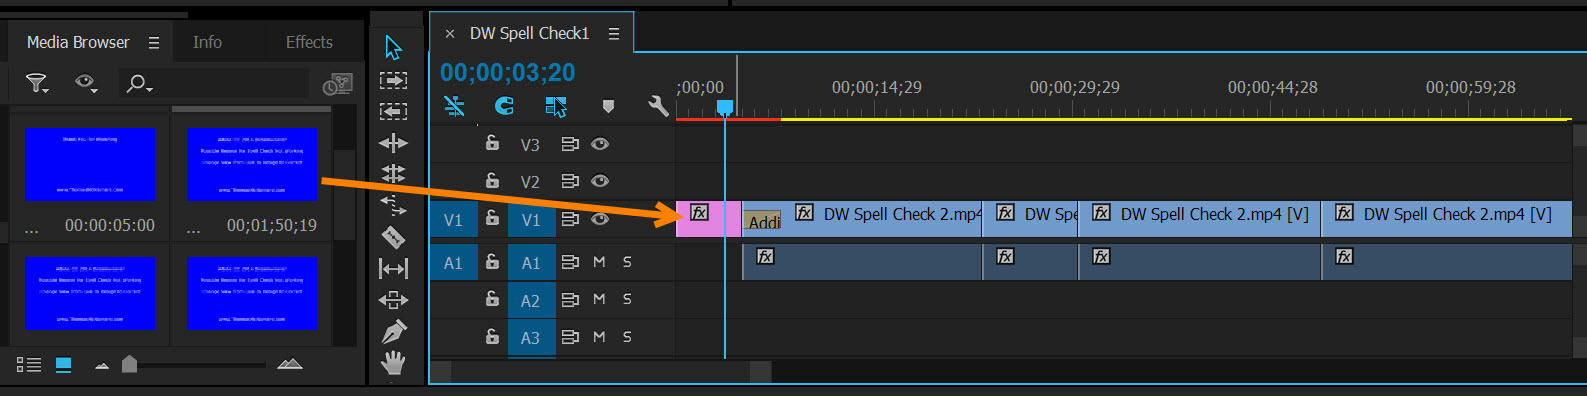 how to change video timeline premire